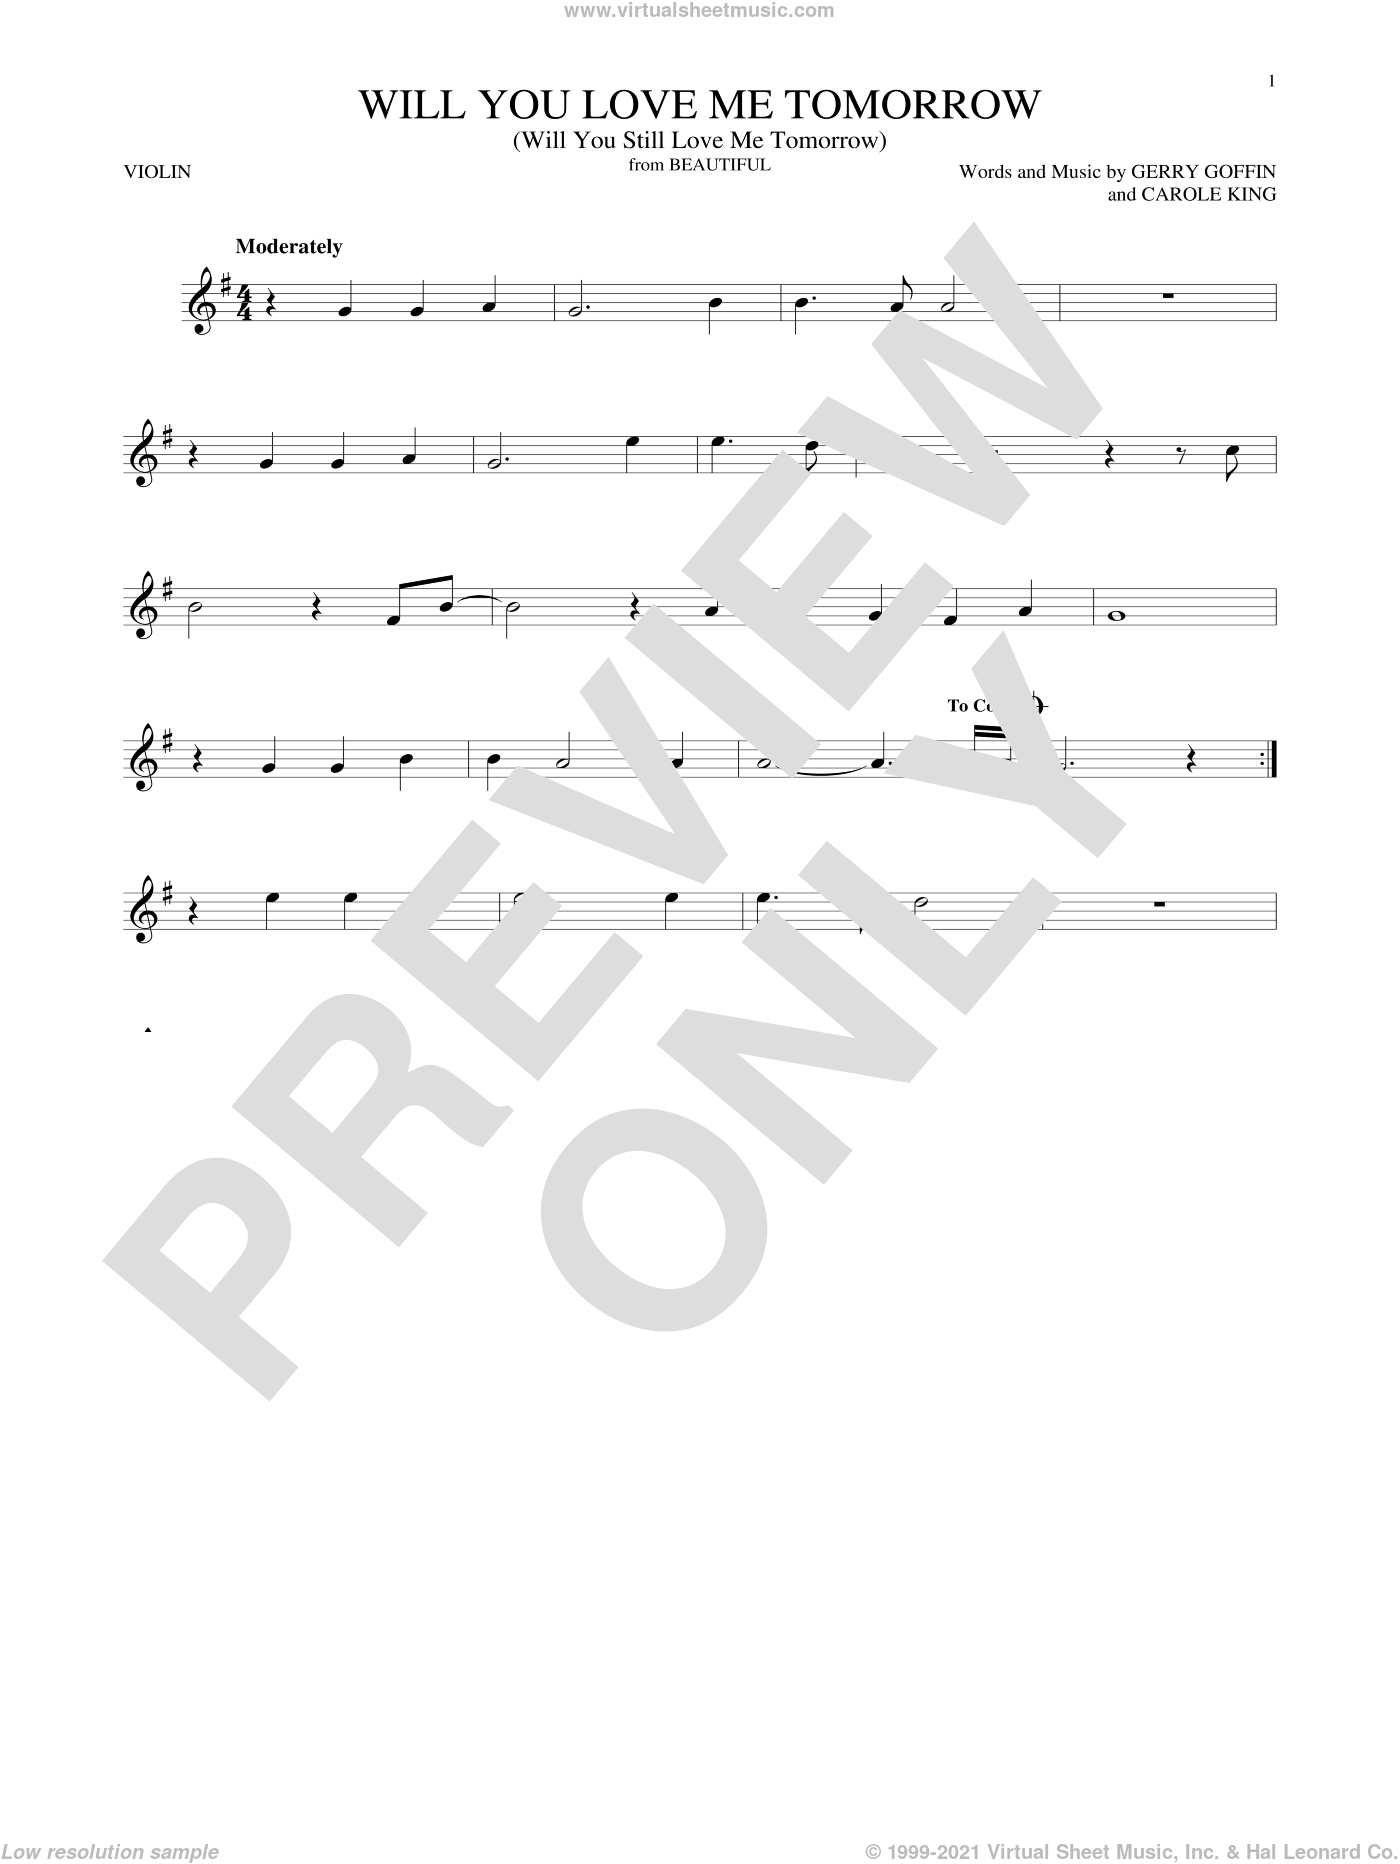 Will You Love Me Tomorrow (Will You Still Love Me Tomorrow) sheet music for violin solo by The Shirelles, Carole King and Gerry Goffin, intermediate skill level